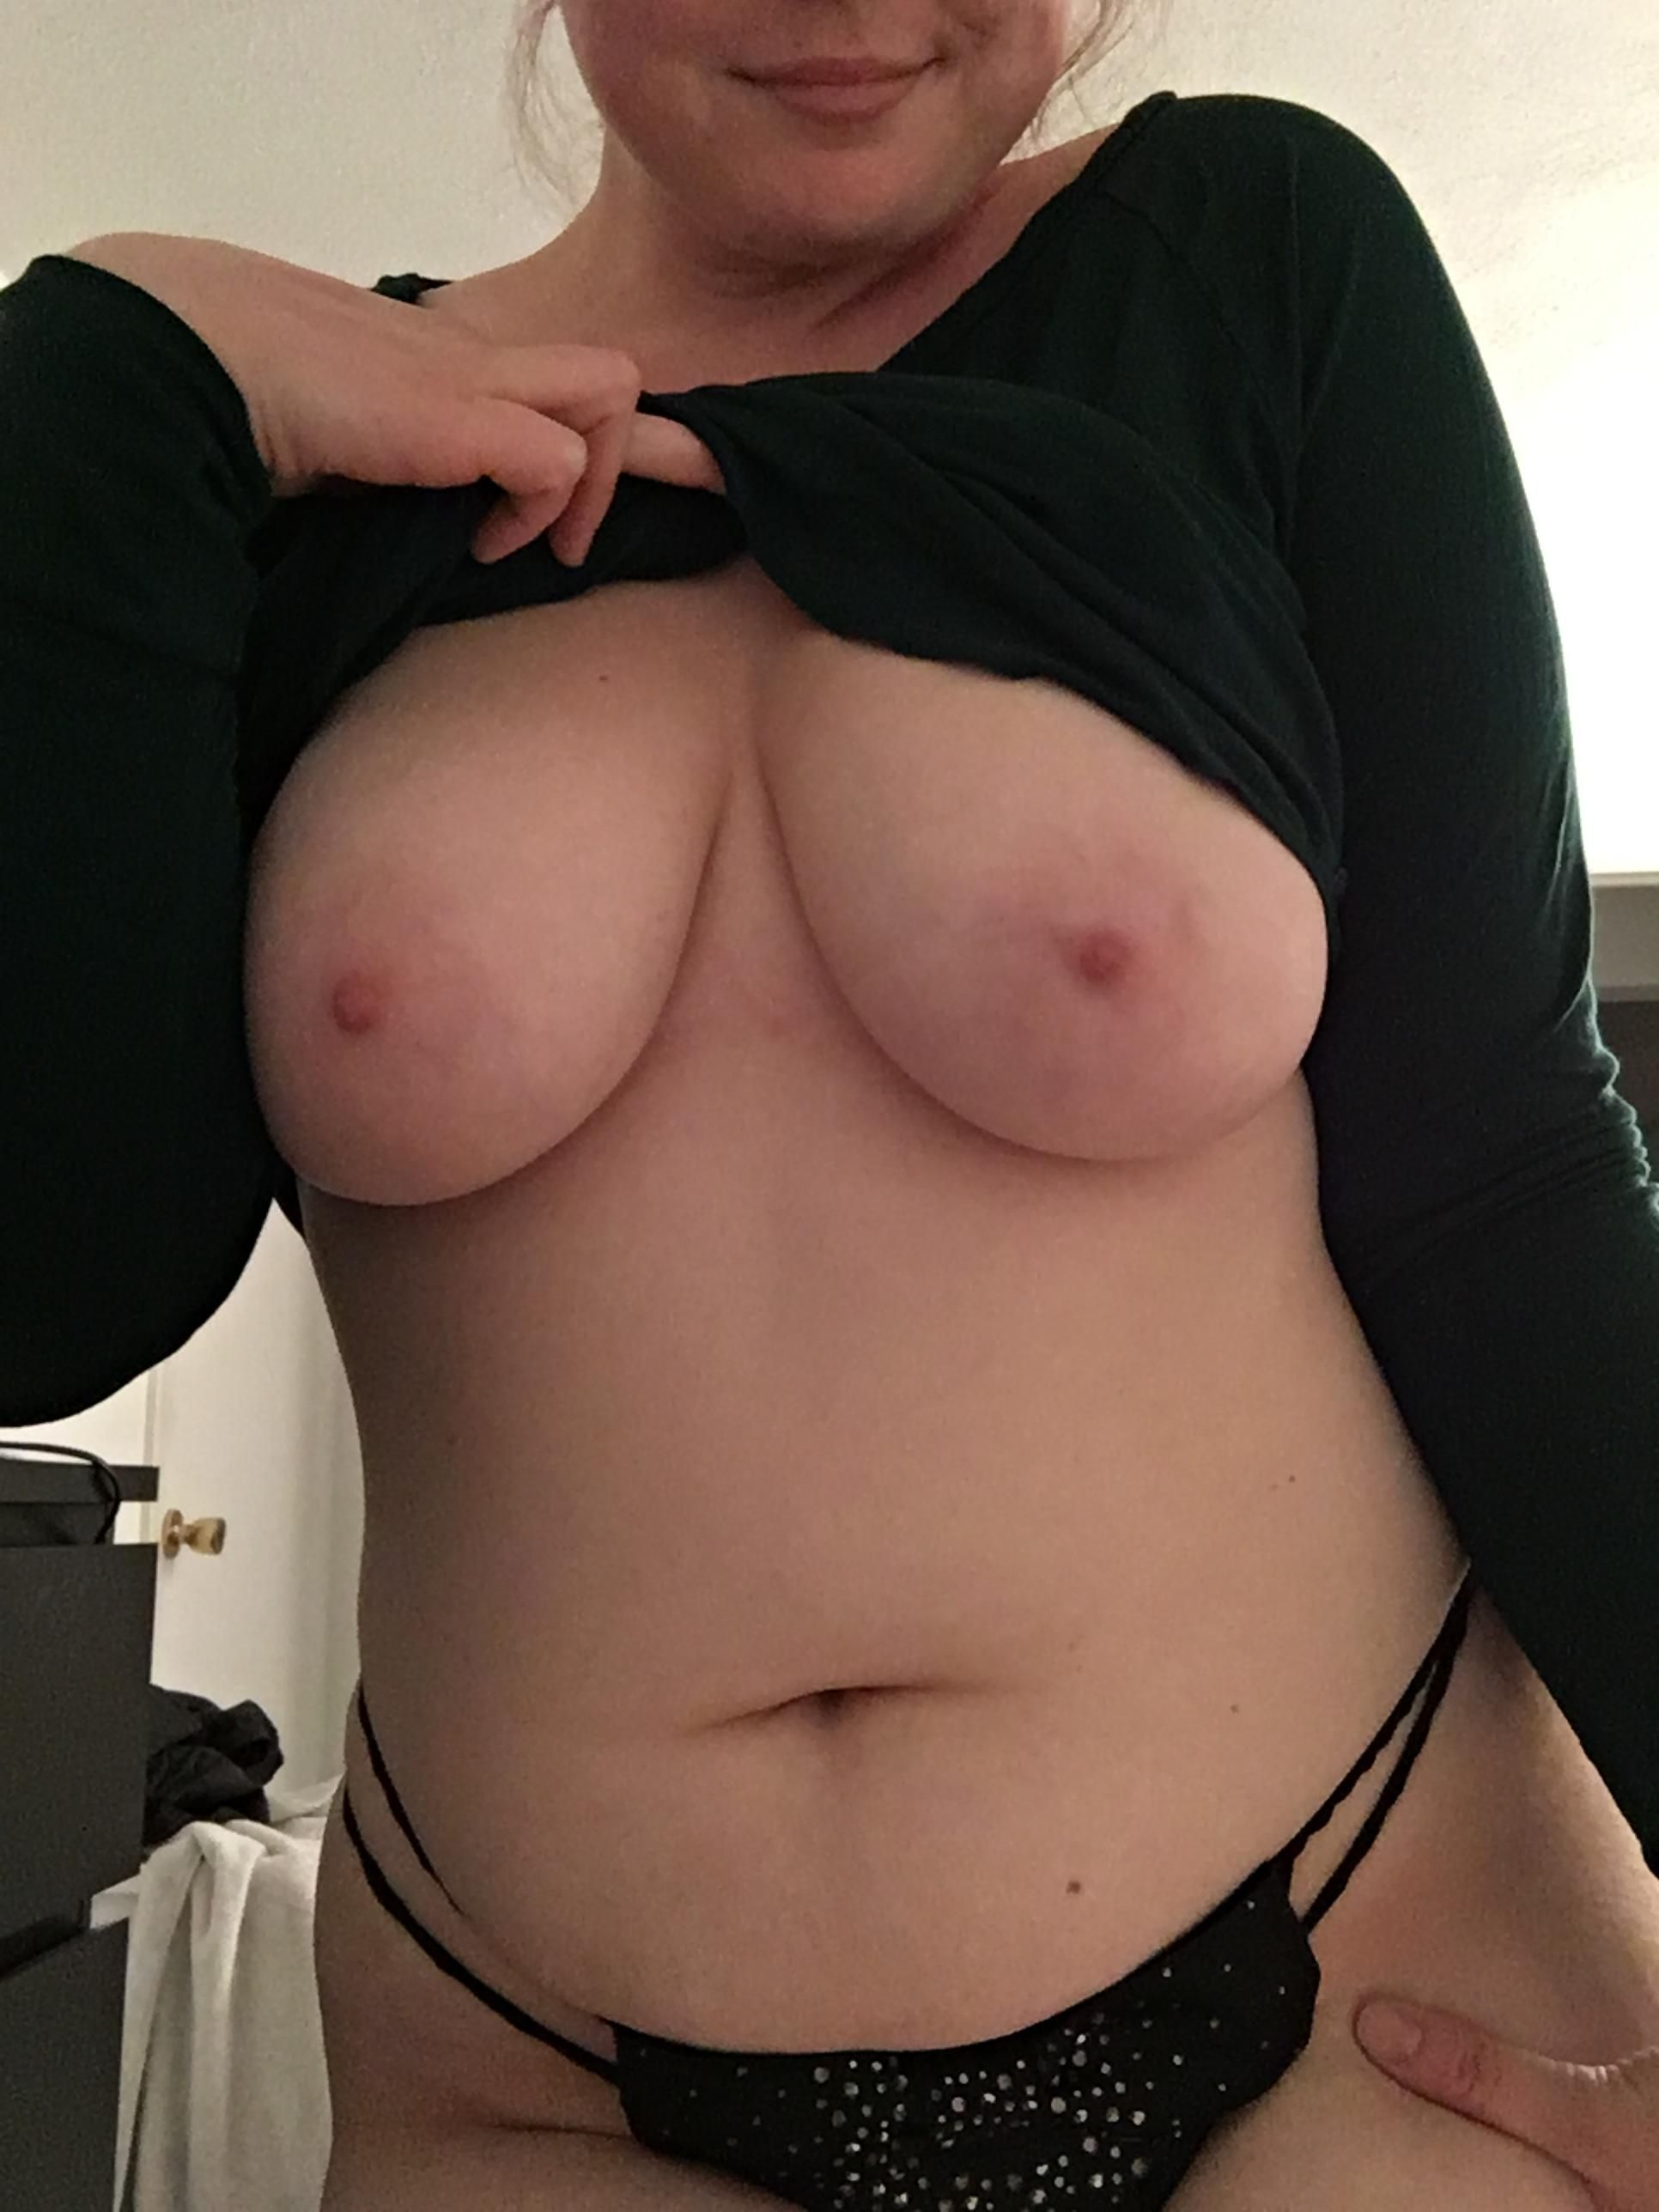 [Curvy Amateurs] Had a long day… Can you make me feel better 😉